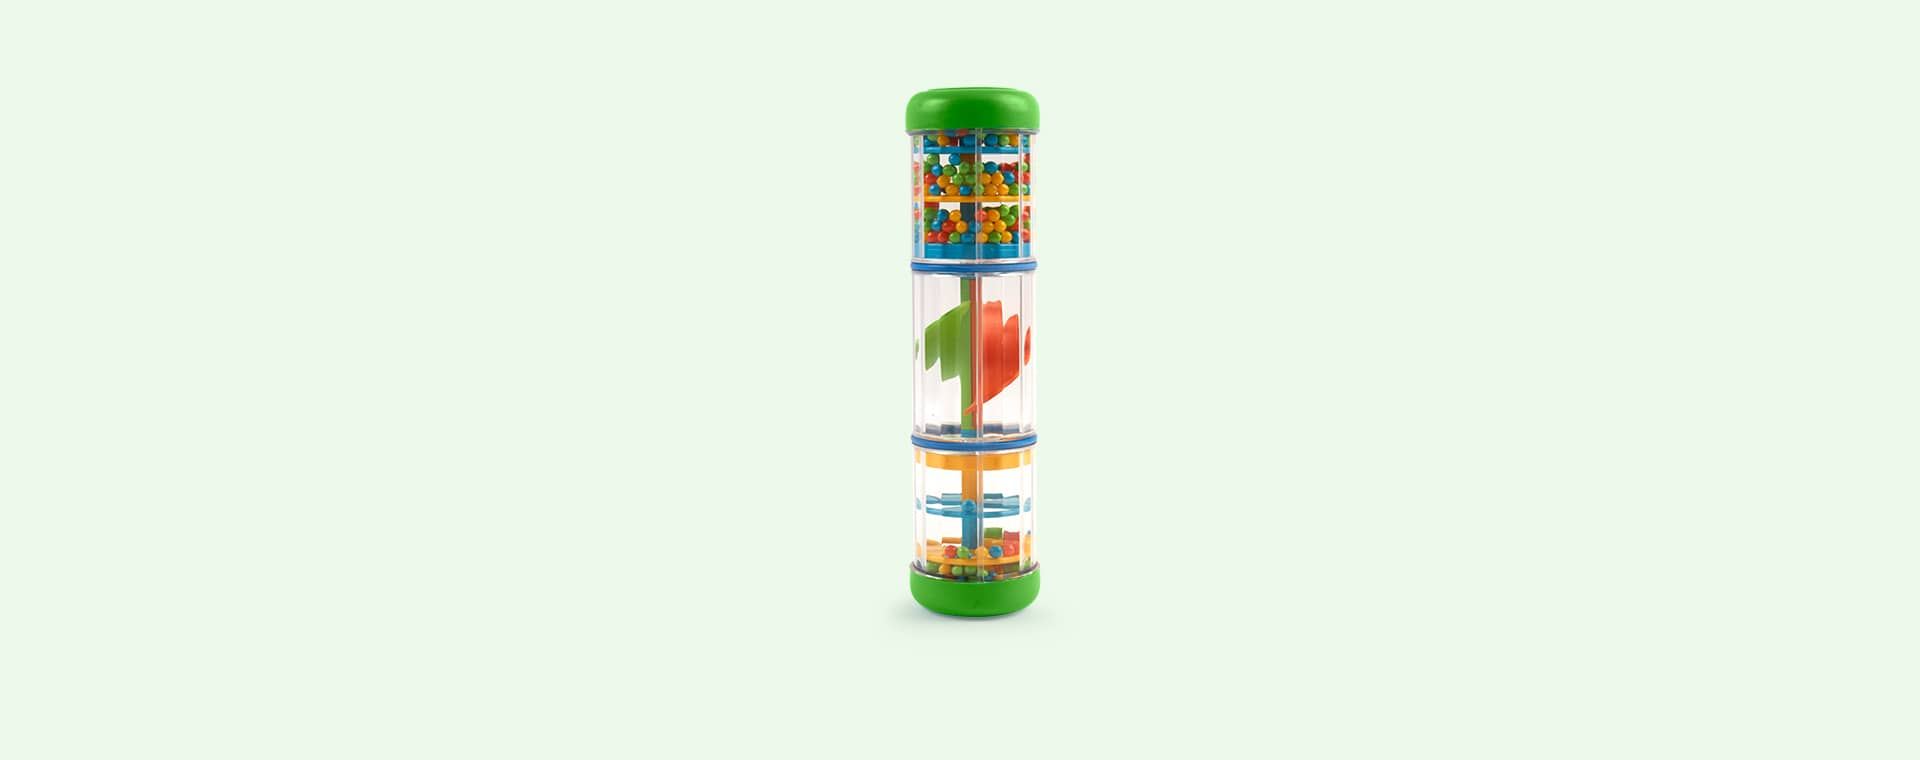 Green Halilit Rainbowspinner Rainmaker Toy